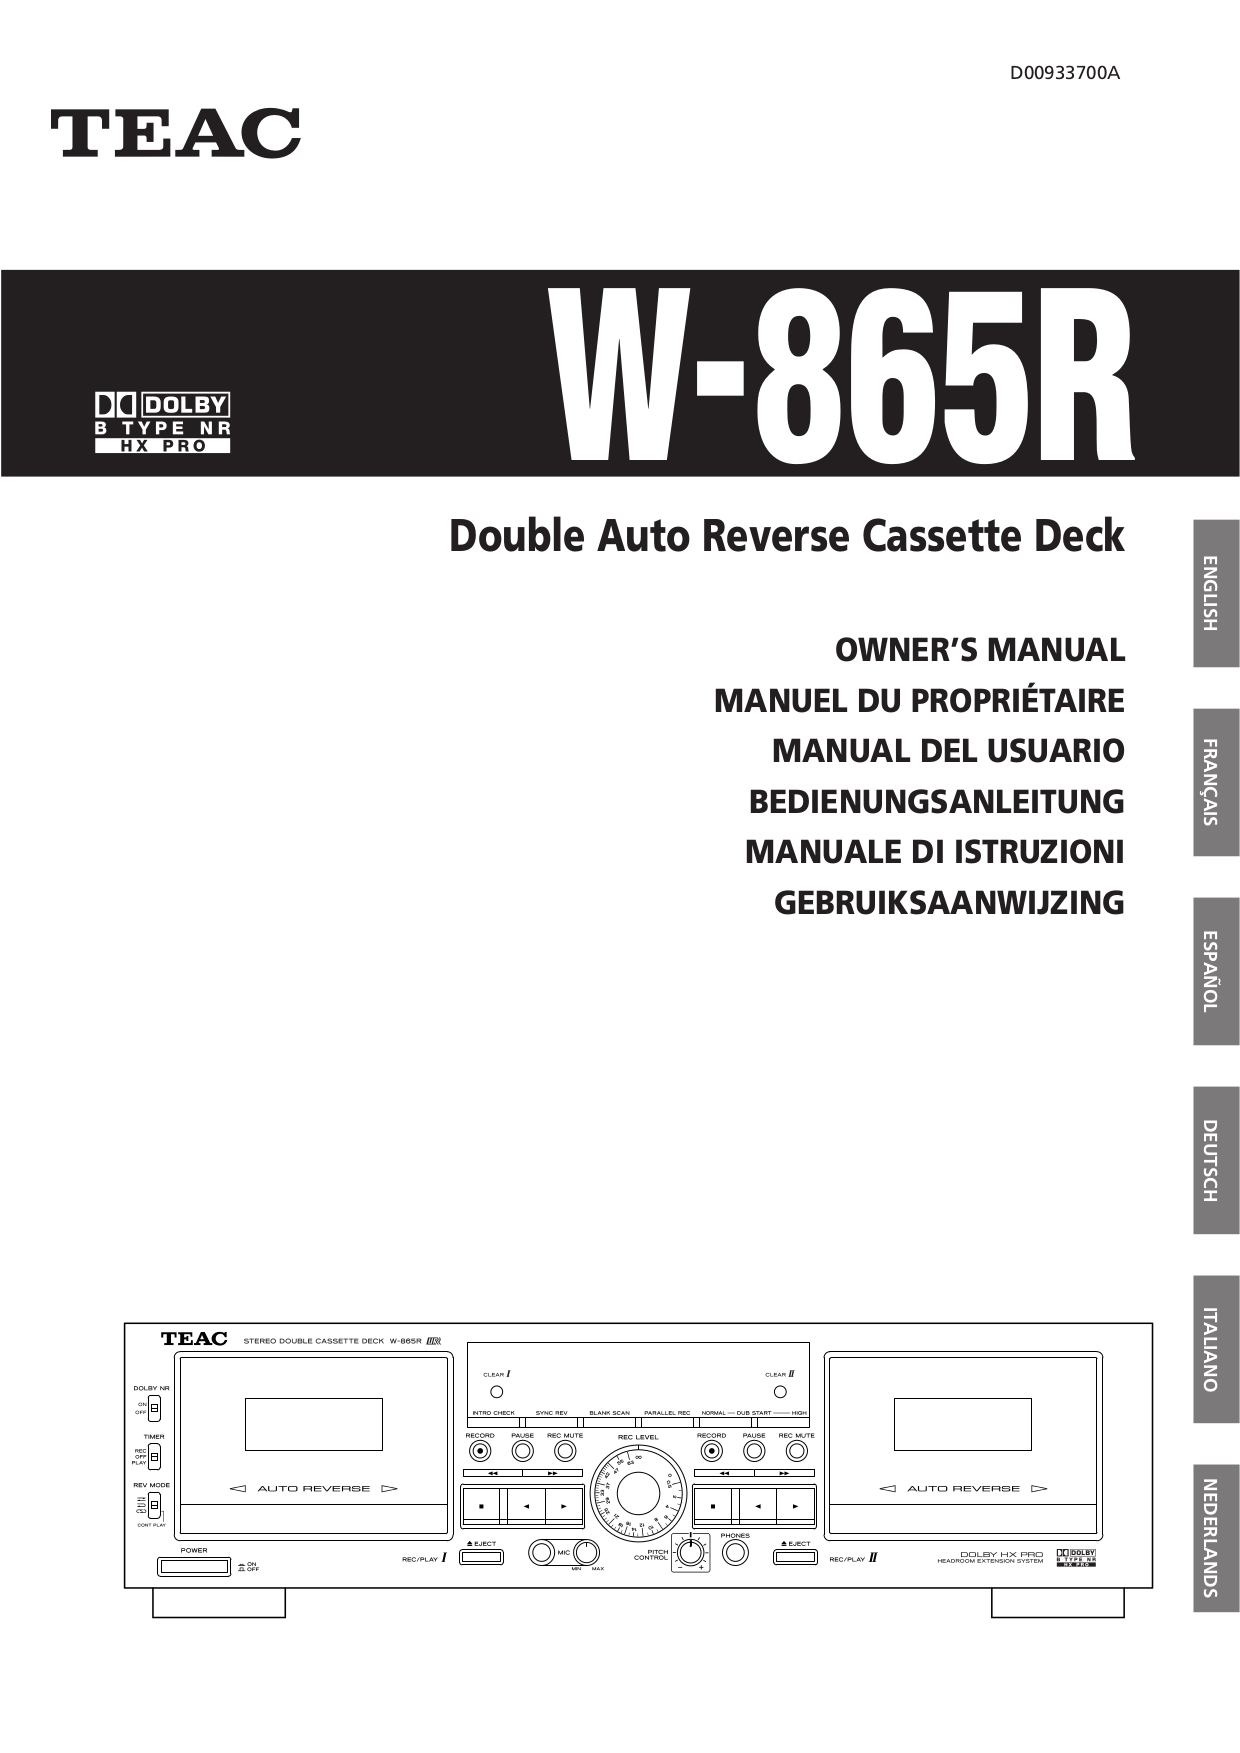 Download free pdf for Teac W-865R Cassette Deck Other manual